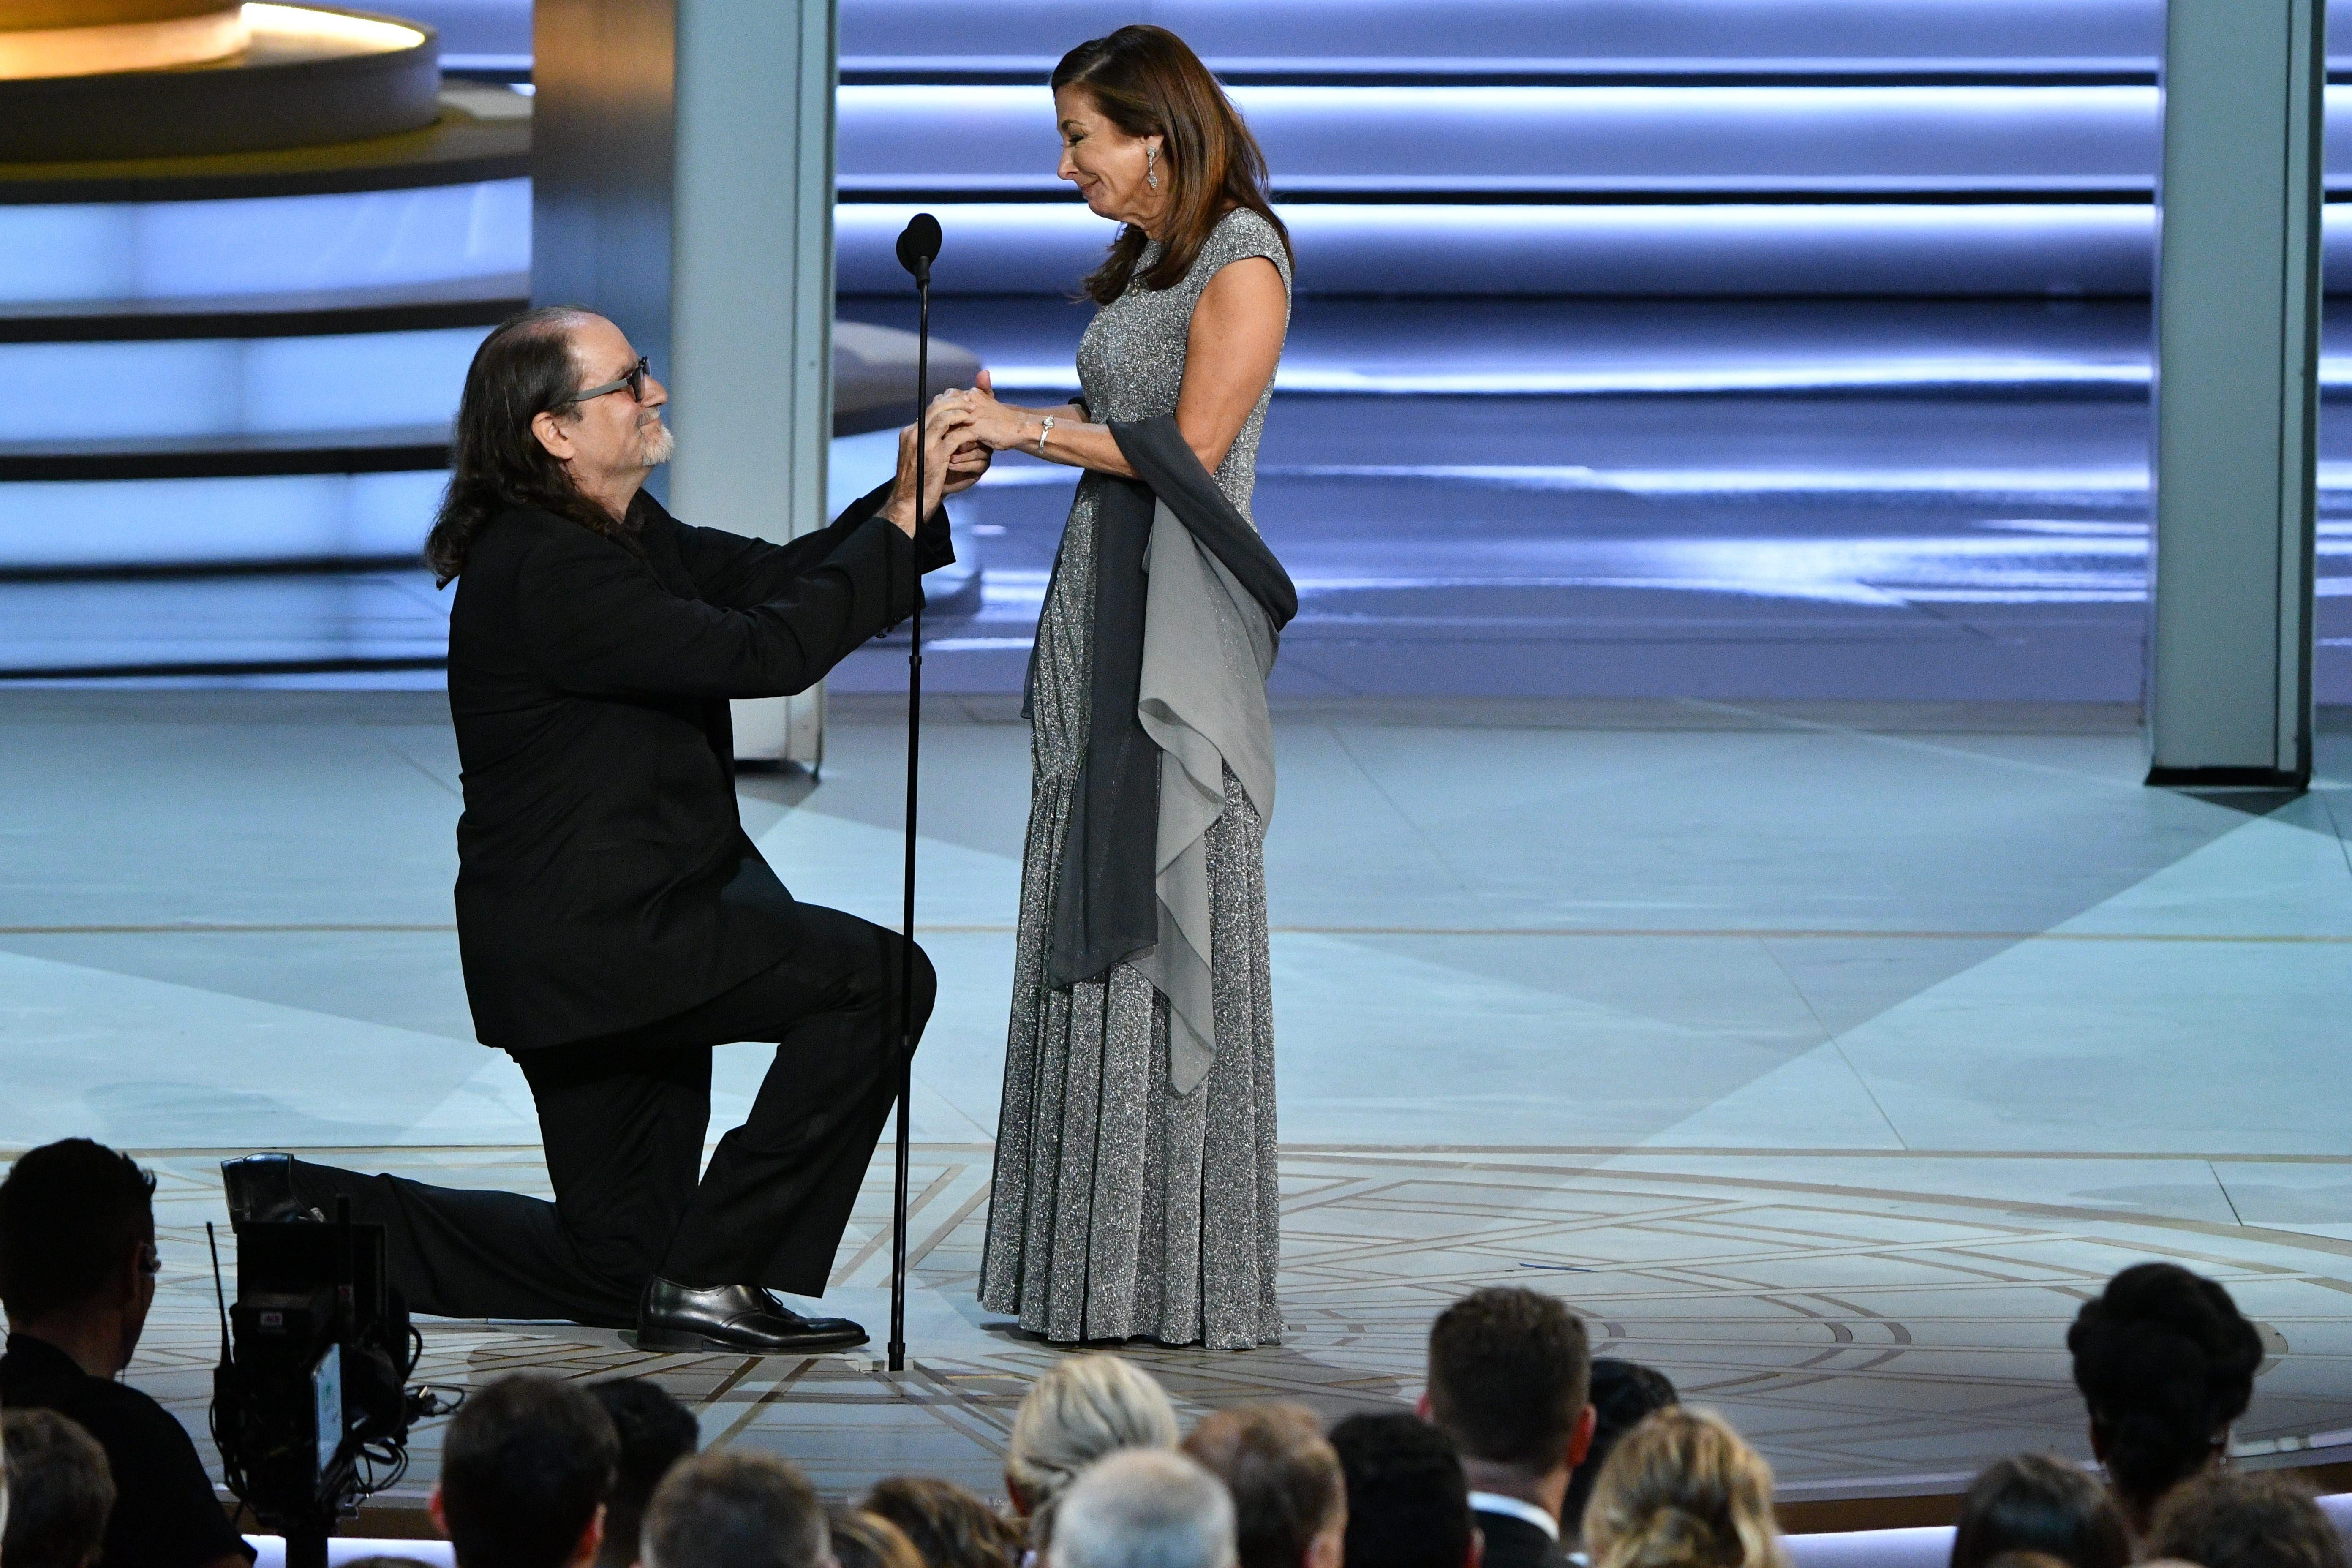 Glenn Weiss spills all about his Emmys proposal to Jimmy Kimmel, including his backup plan